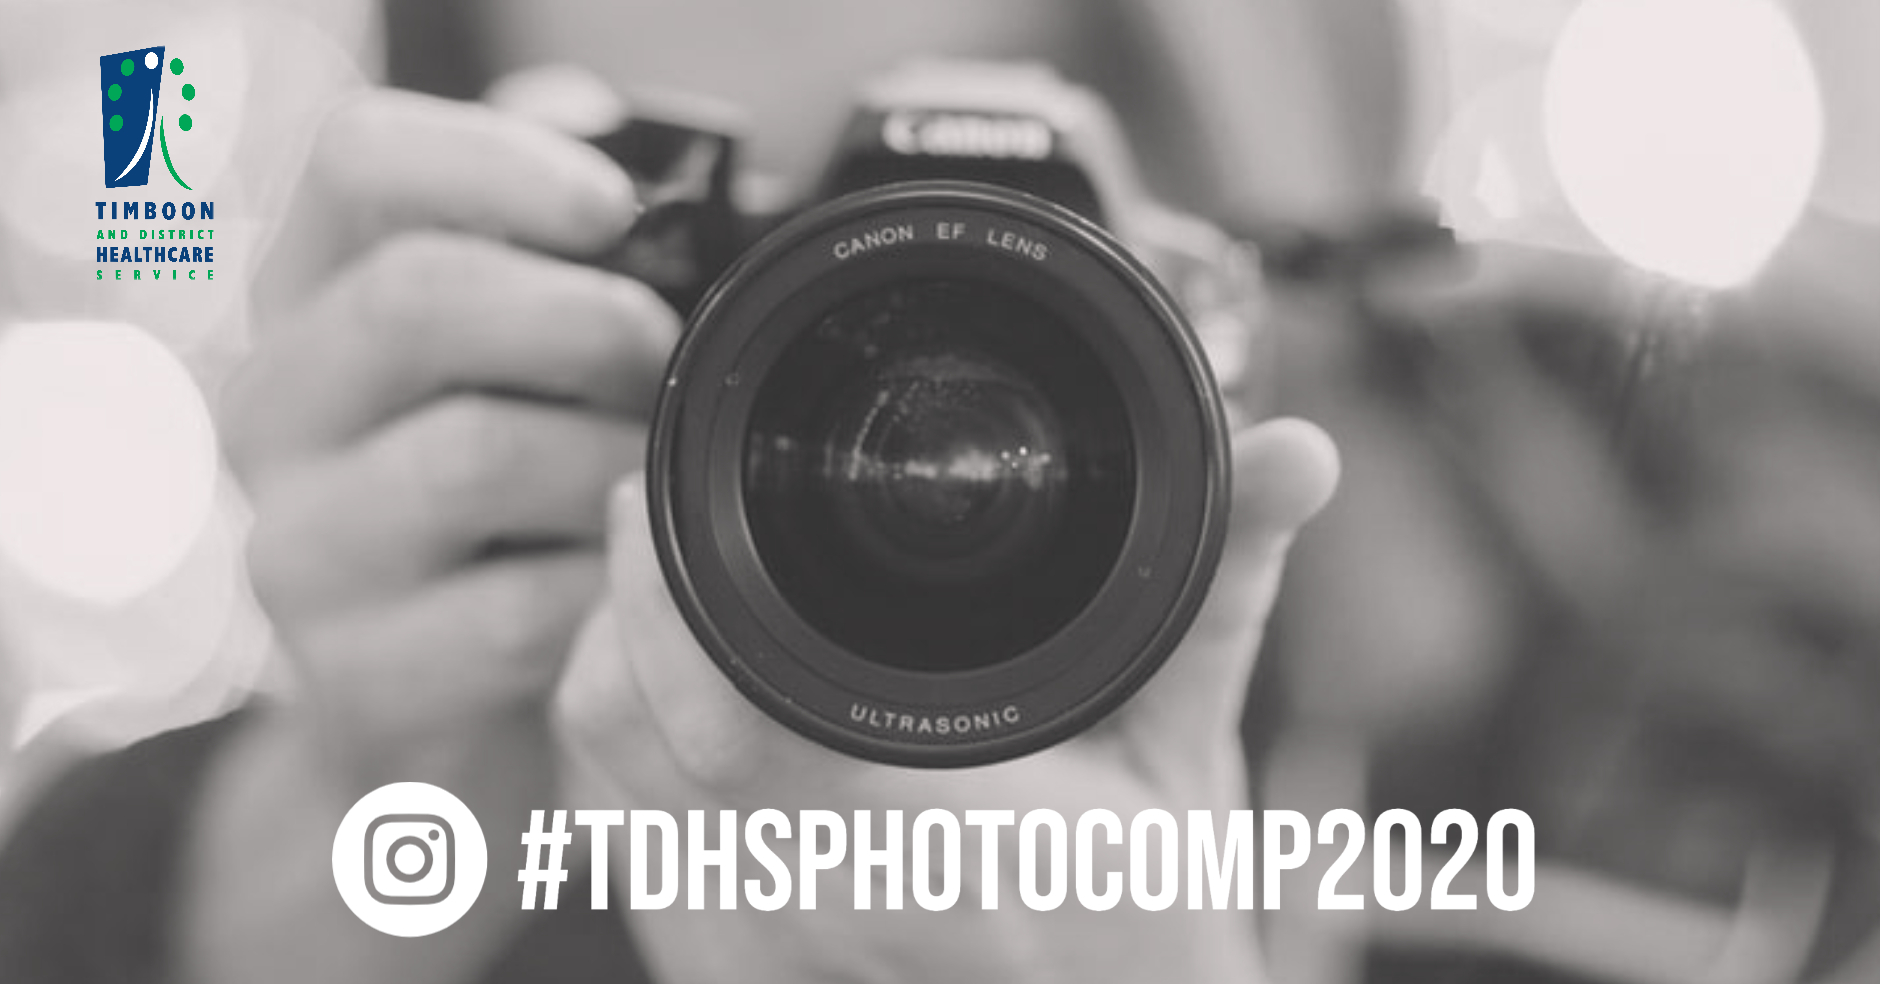 TDHS Photo Comp 2020 tdhsphotocomp2020